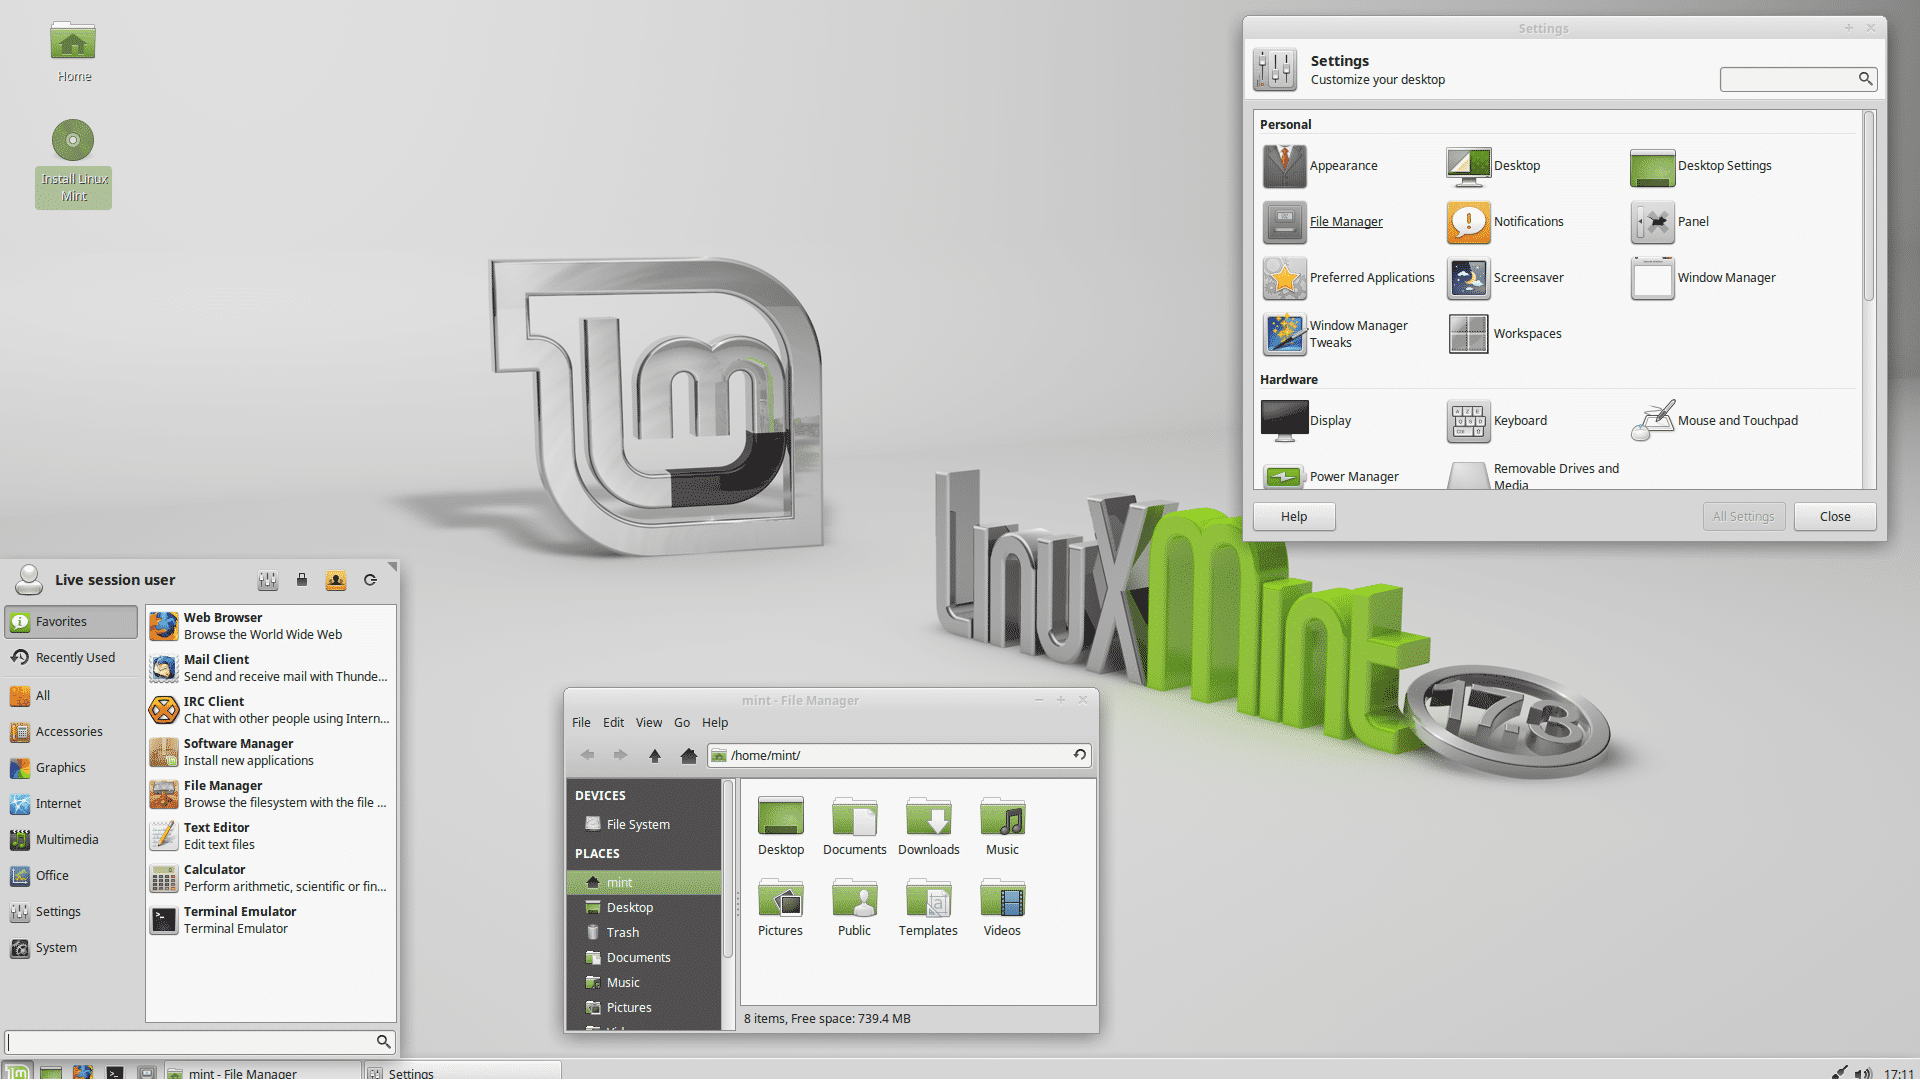 Linux Mint 17.3 Xfce Edition